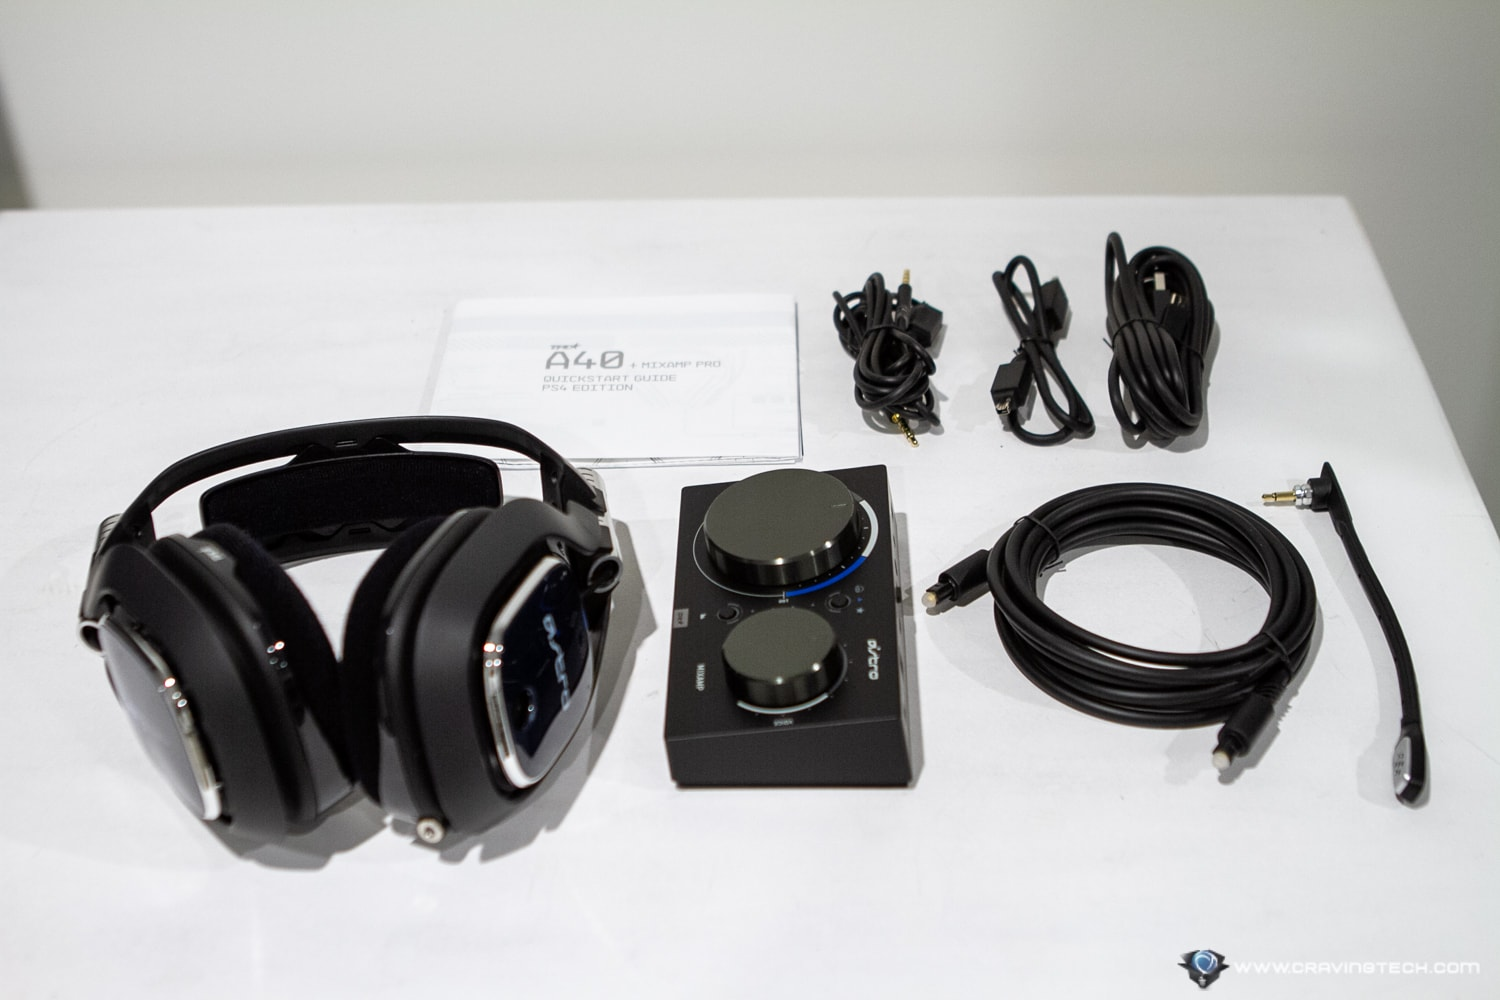 ASTRO A40 TR & MixAmp Pro Packaging Contents